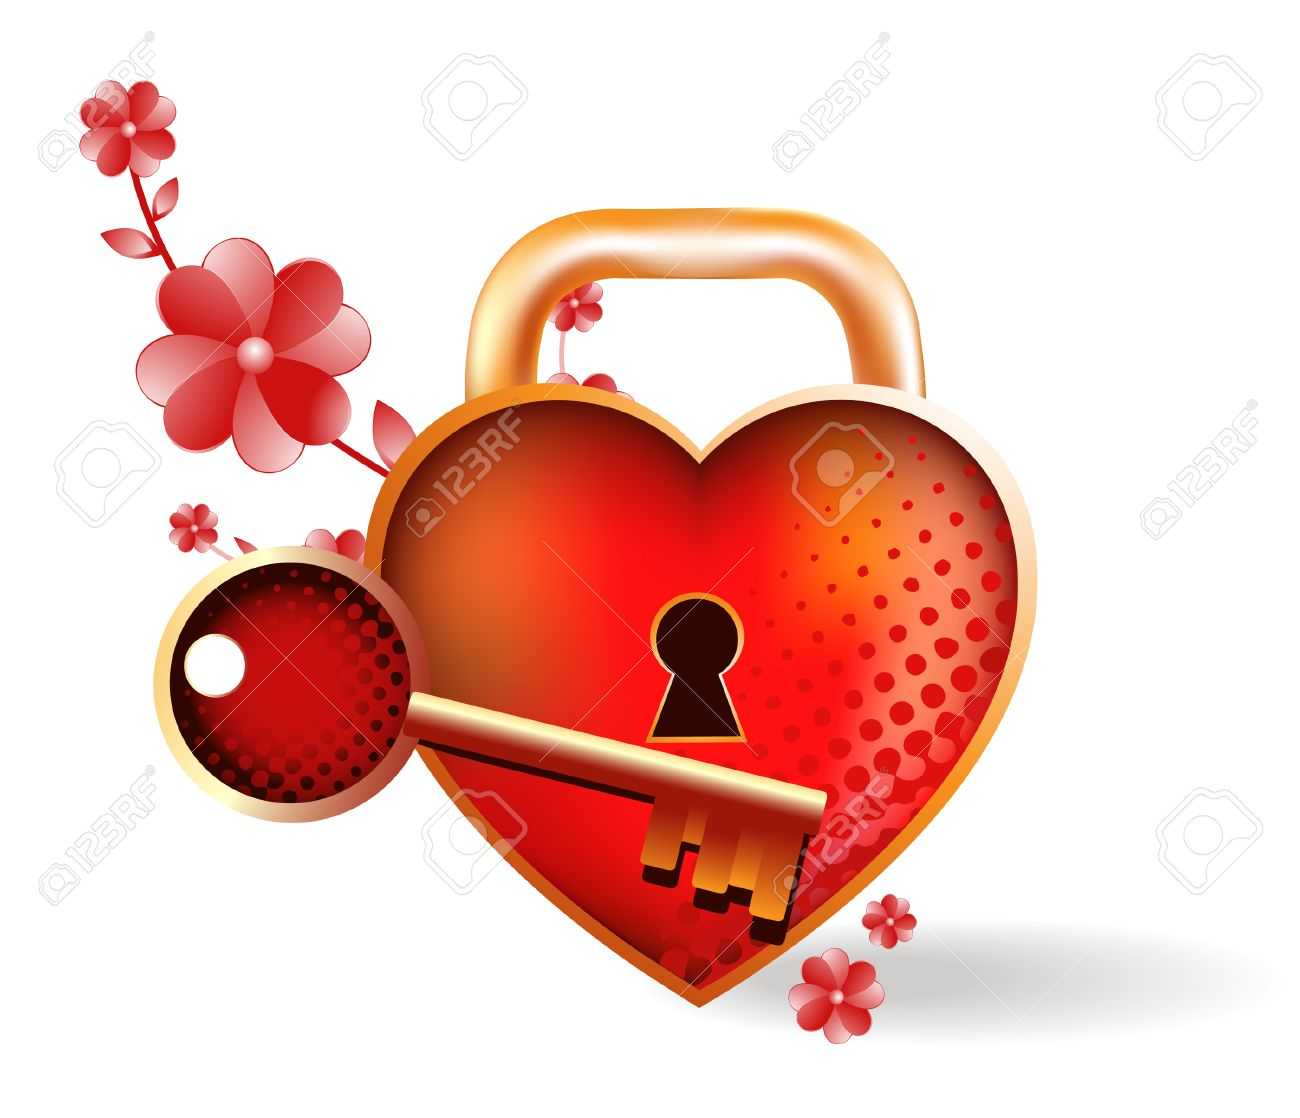 Heart- lock with a key. Bright vector illustration - 8780869